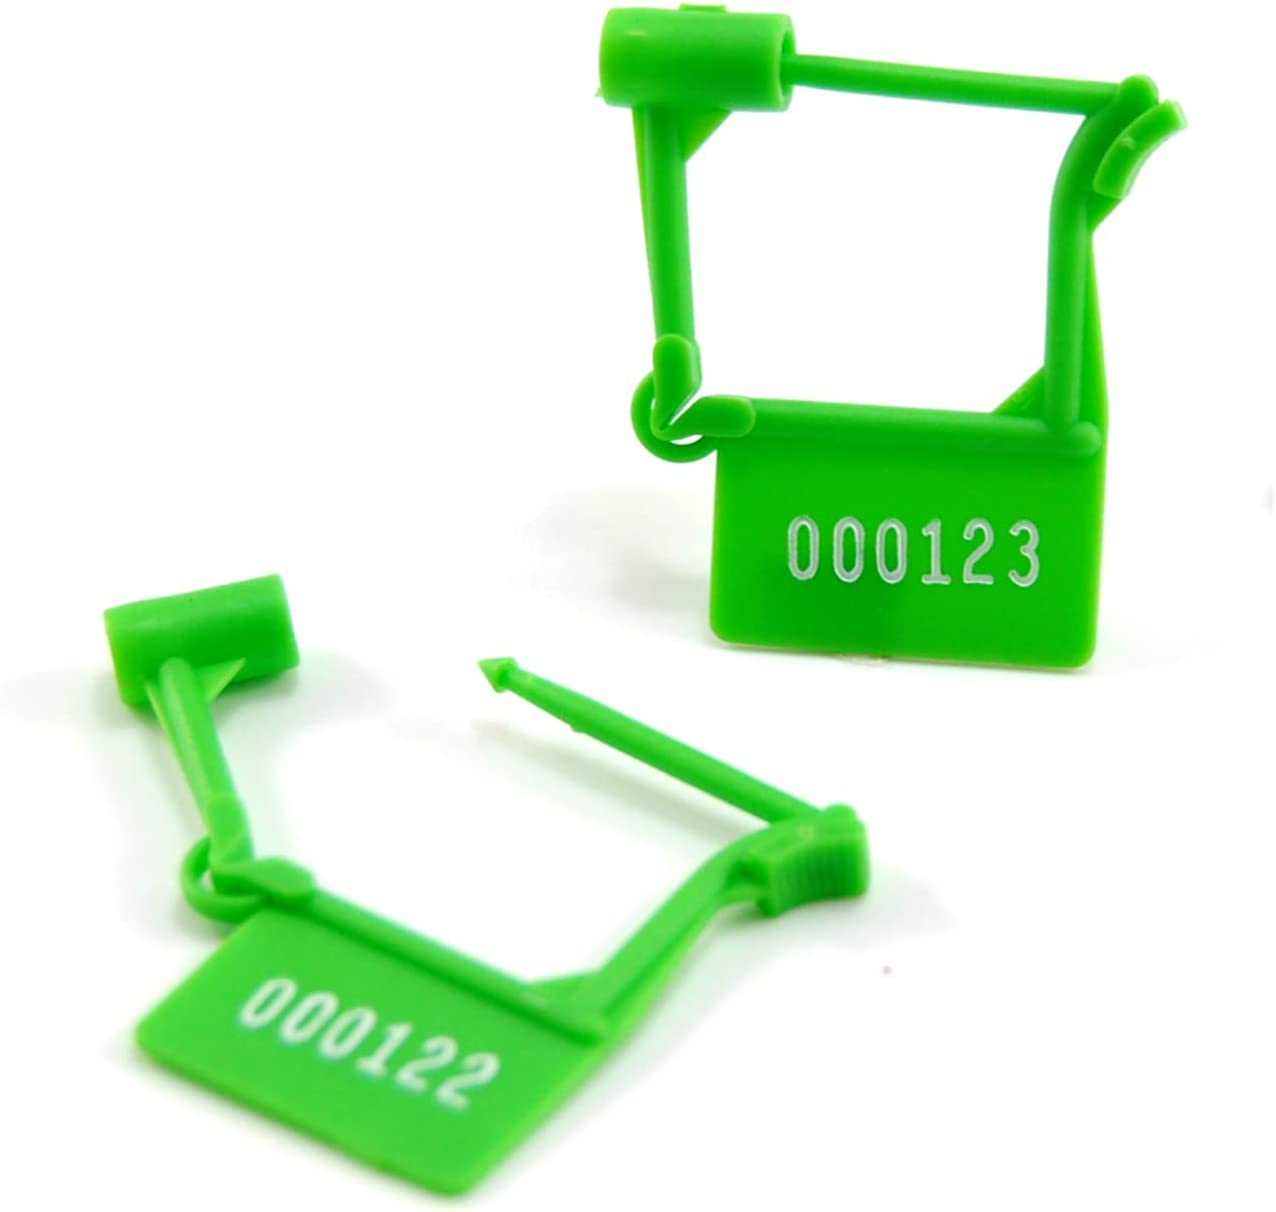 Leadseals R Dealing full price reduction Tamper Proof Choice Plastic Security Seals Numbere Padlock